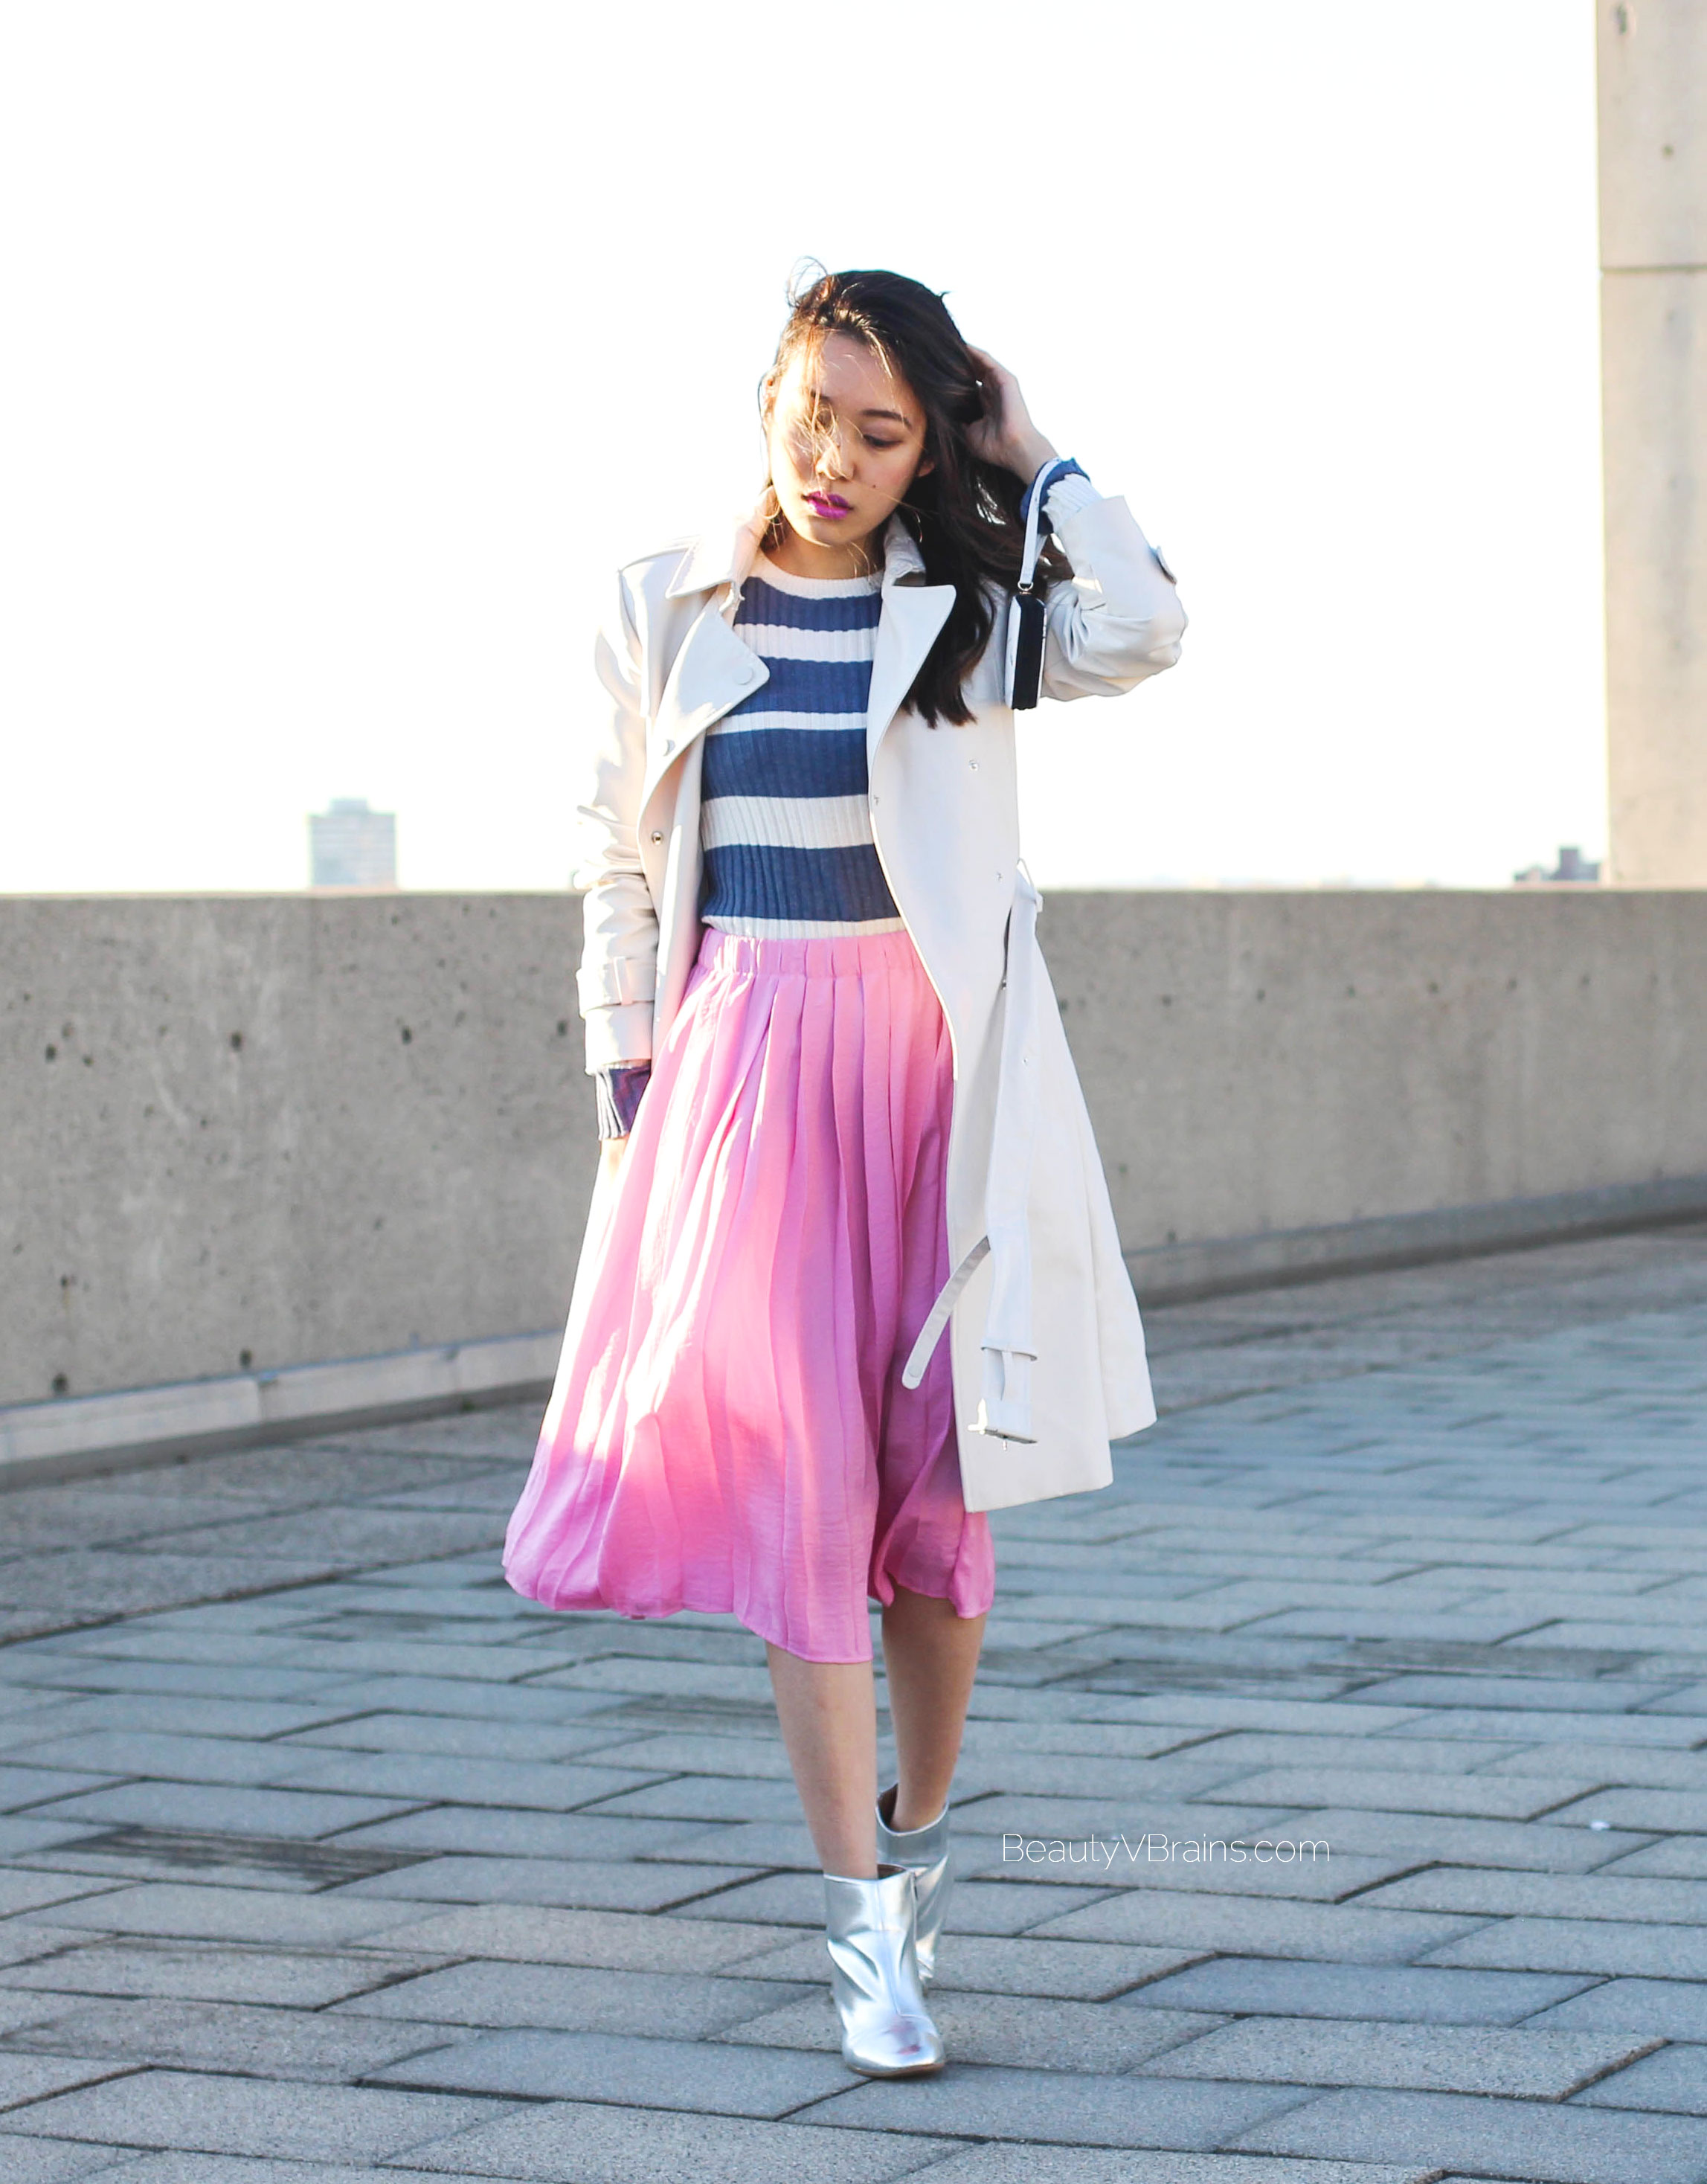 Spring outfit inspo - Pink pleated skirt and striped sweater